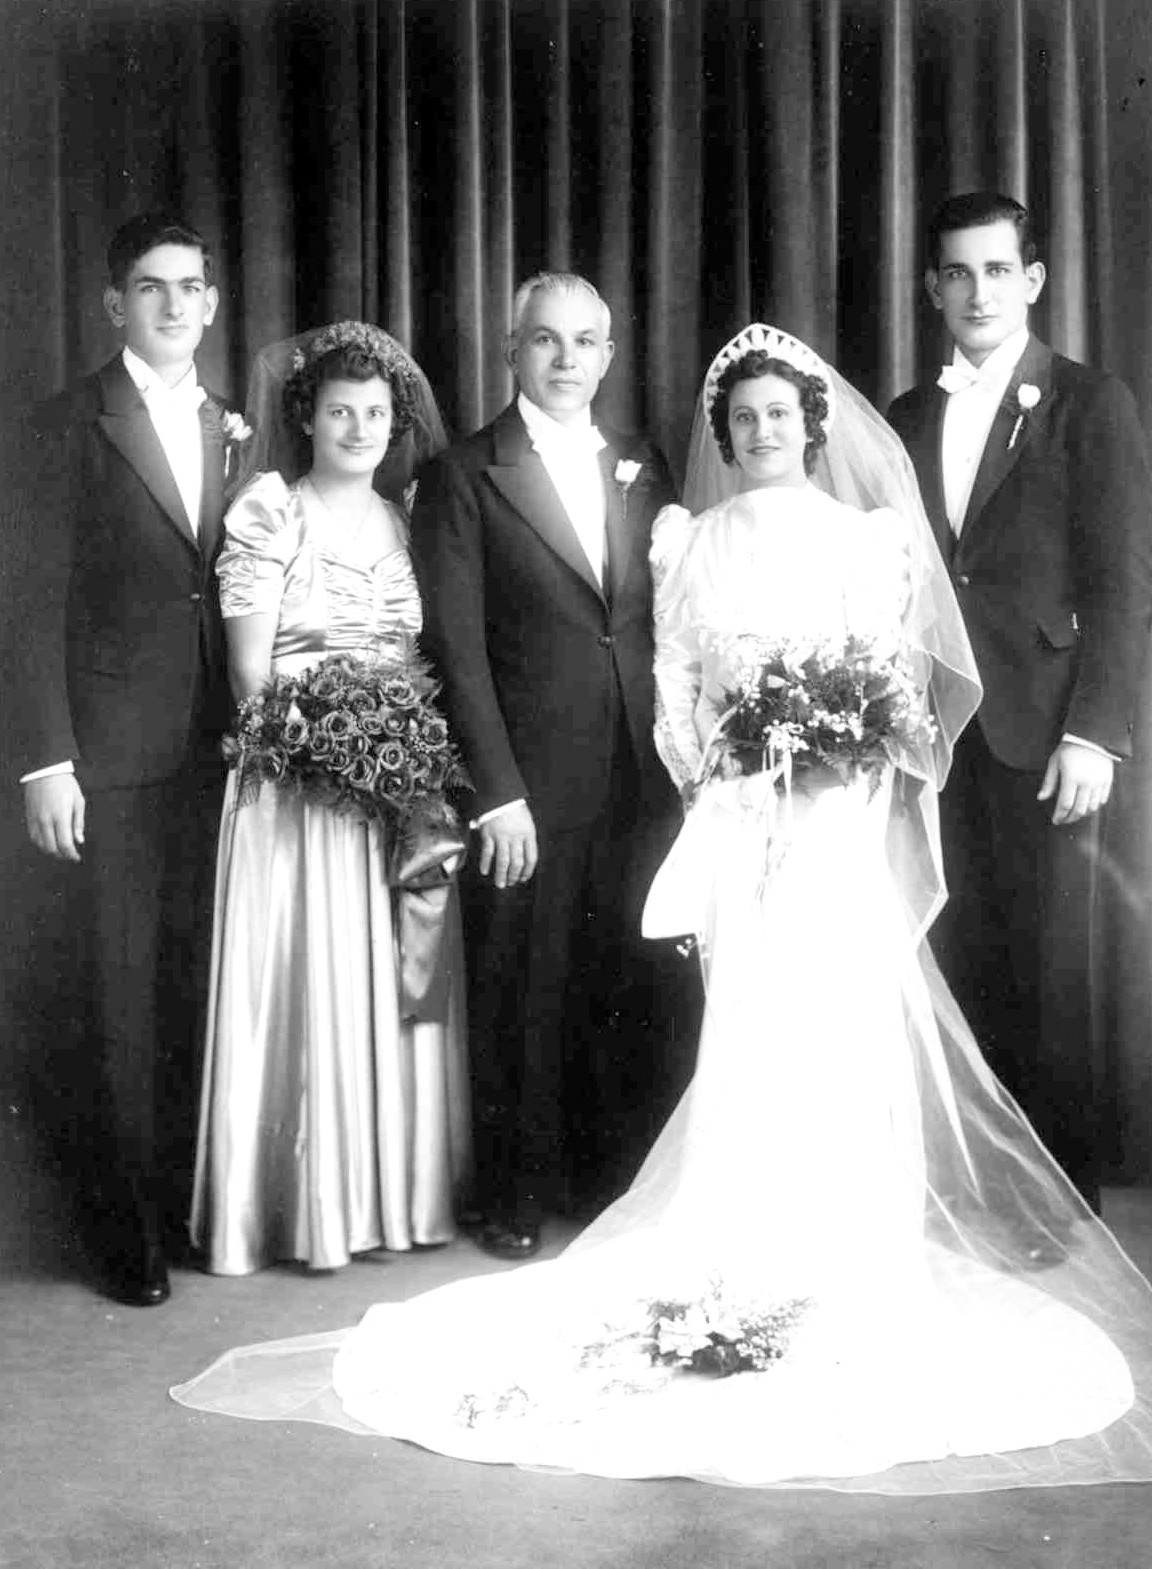 WEDDING PARTY: Agnes and Michael and members of their wedding party. The couple was married in 1940.